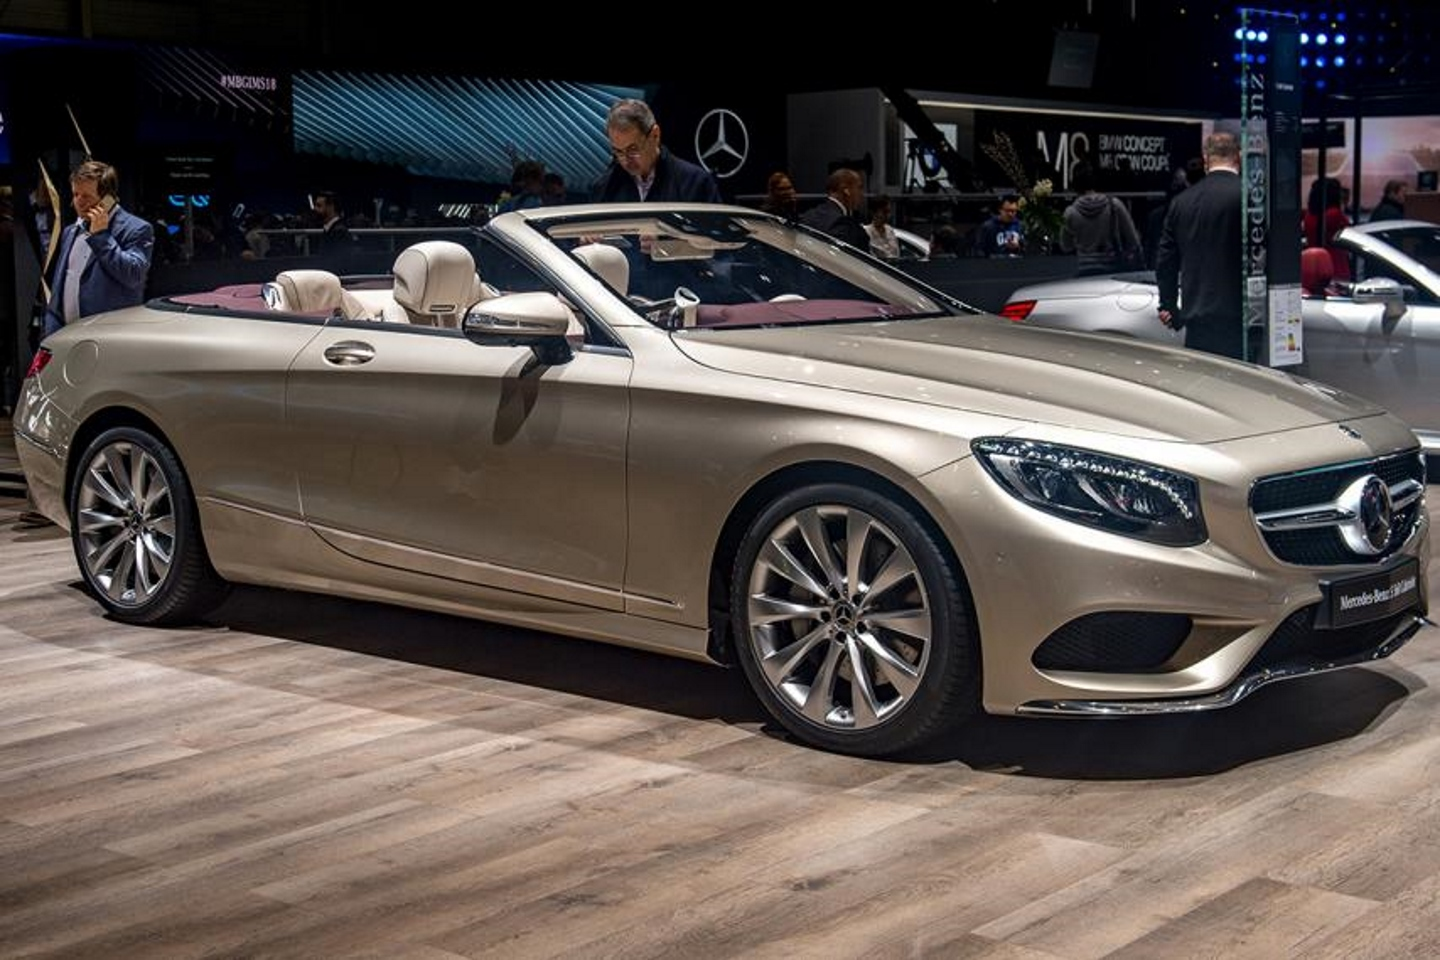 Mercedes Benz S 560 Cabriolet. Фото: Robert Hradil/Getty Images